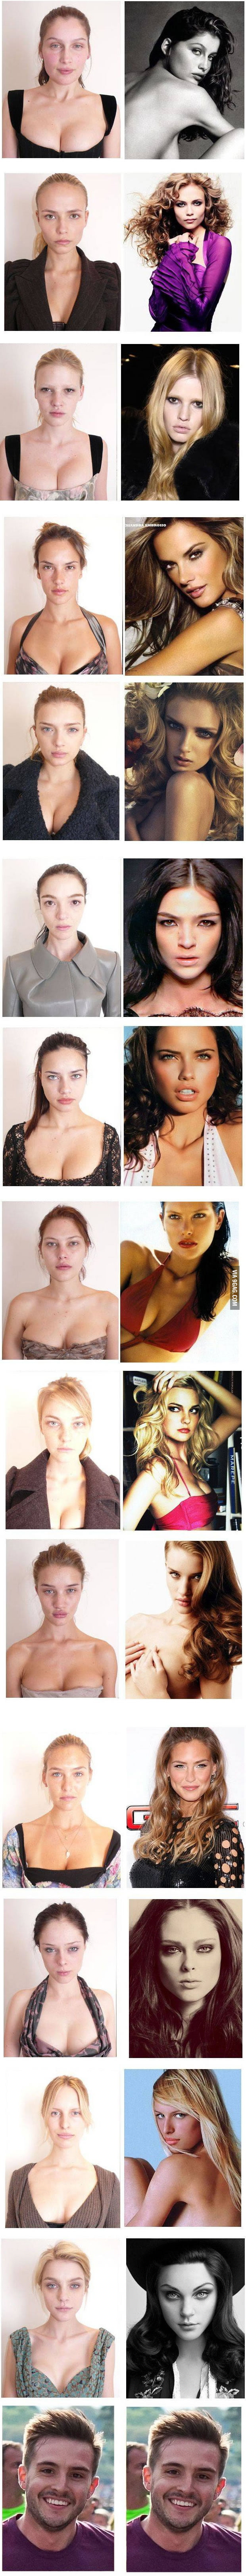 Models without their make-up